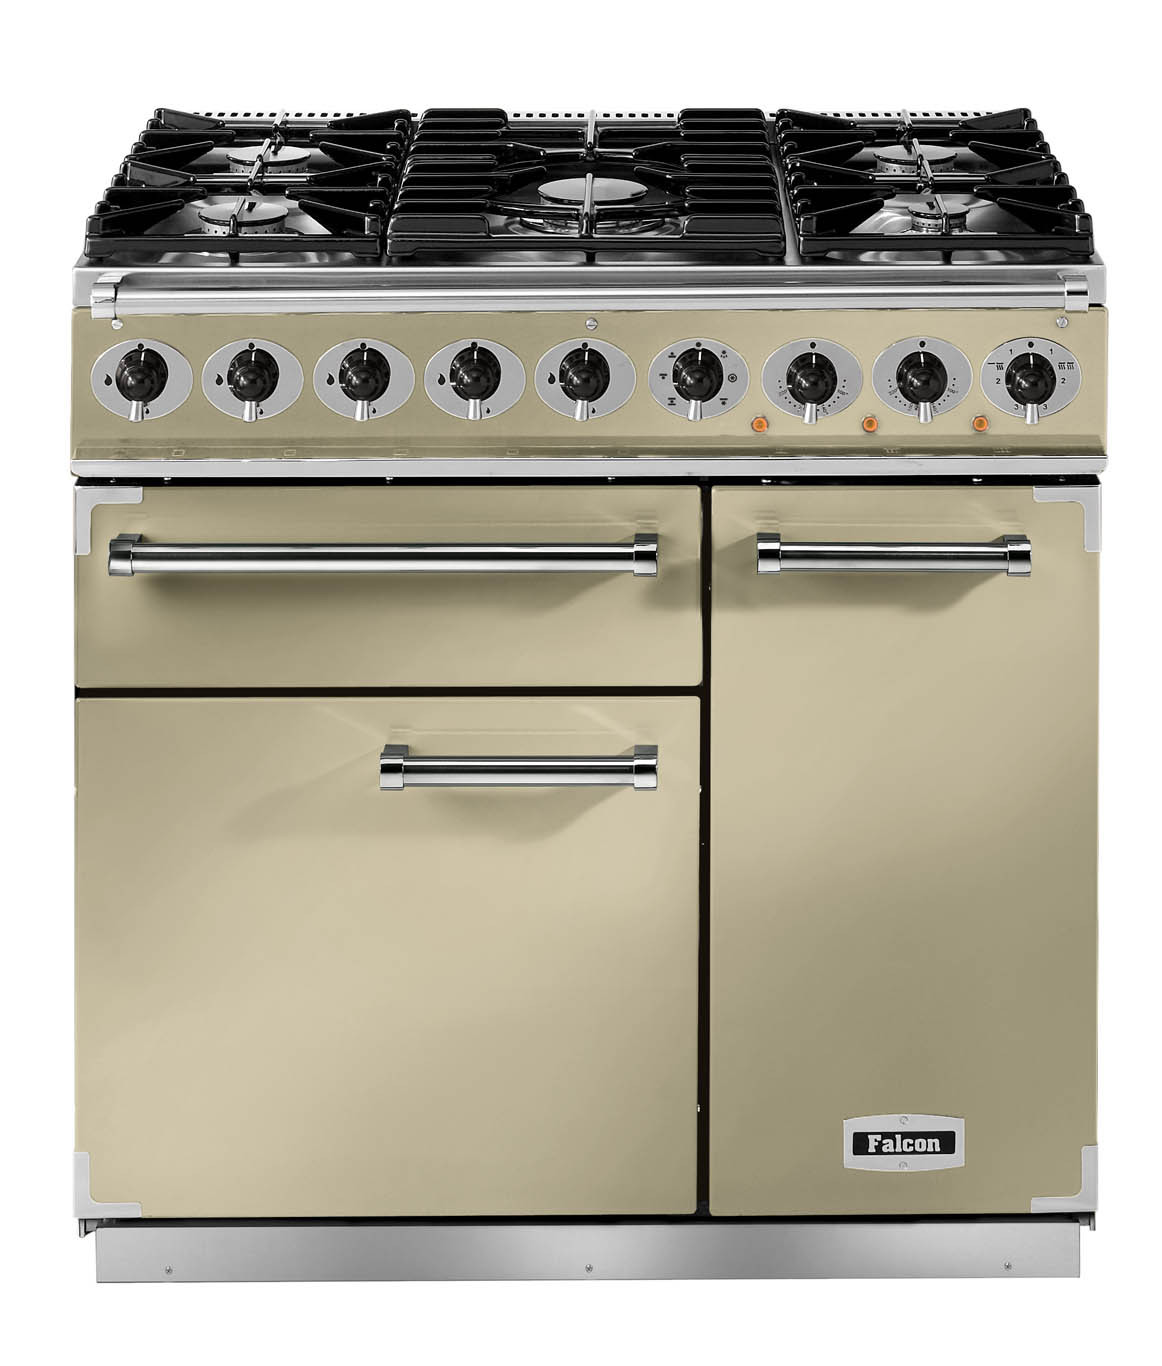 Falcon Deluxe 900 Dual Fuel Cream/Chrome Range Cooker with Matt Pan Supports